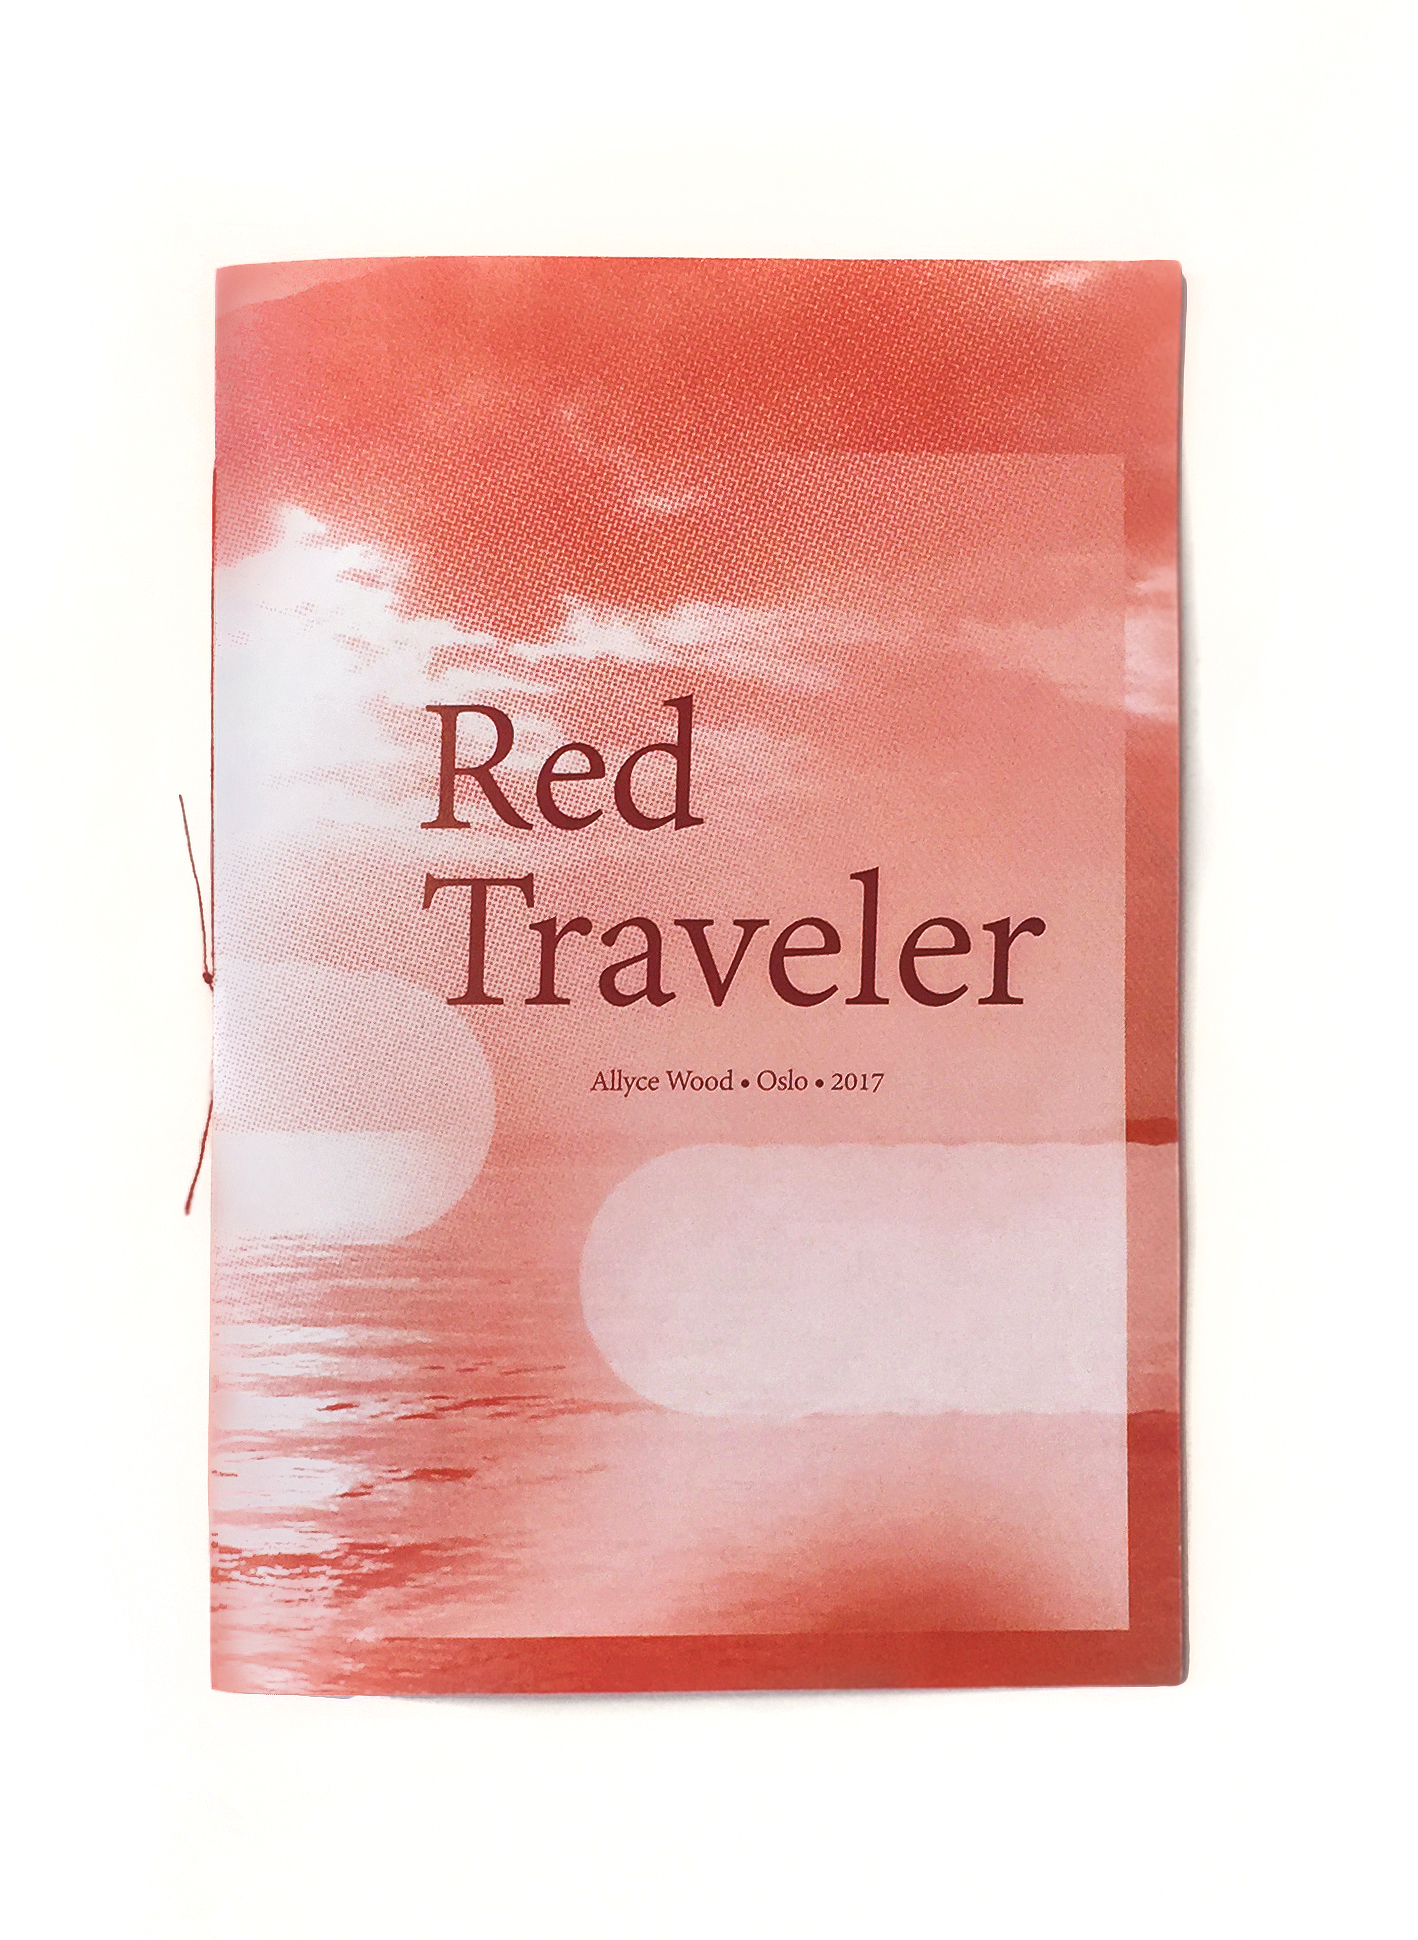 'Red Traveler', Allyce Wood